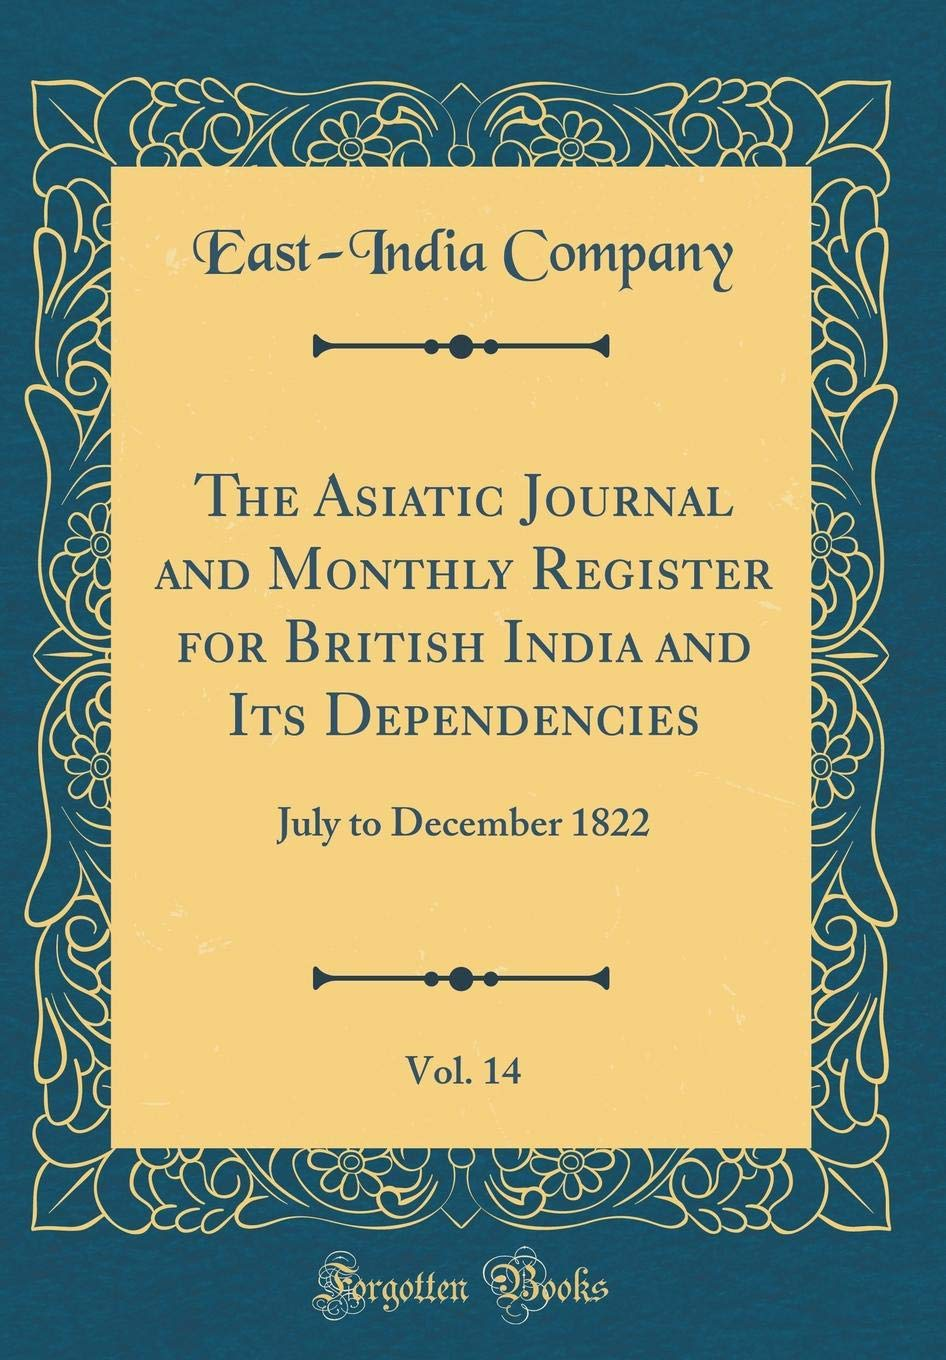 The Asiatic Journal and Monthly Register for British India and Its Dependencies, Vol. 14: July to December 1822 (Classic Reprint) ebook